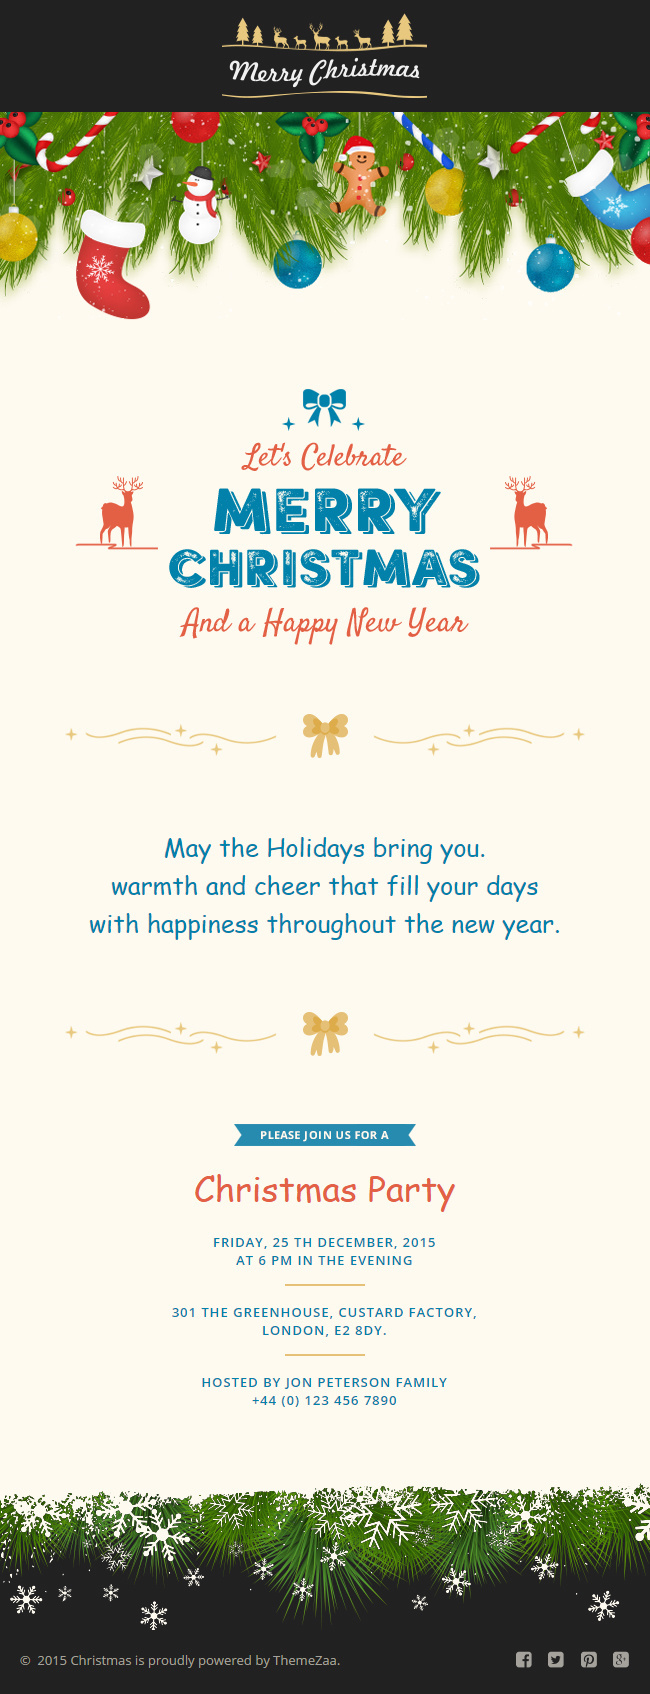 #Christmas #Responsive #Email Template with Online #Builder for Christmas #Wish http://goo.gl/f3Dnmt